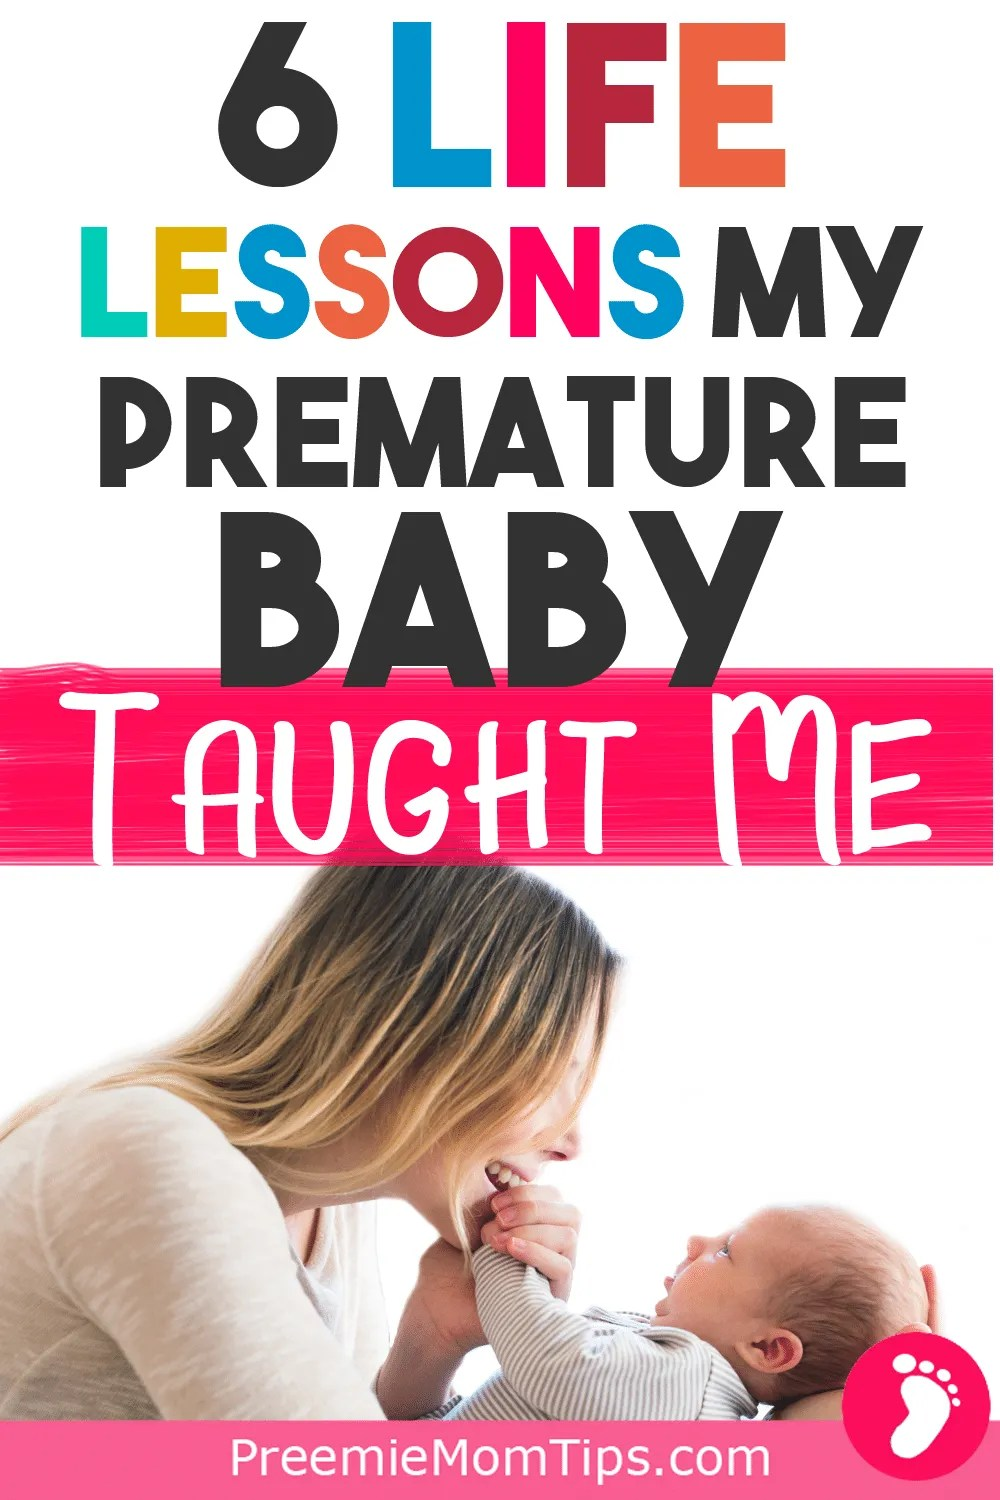 A must read for preemie moms! Having a premature baby was, for me, witnessing a miracle! Here are my thoughts on becoming a proud preemie mom! #preemiemom #mom #baby #prematurebaby